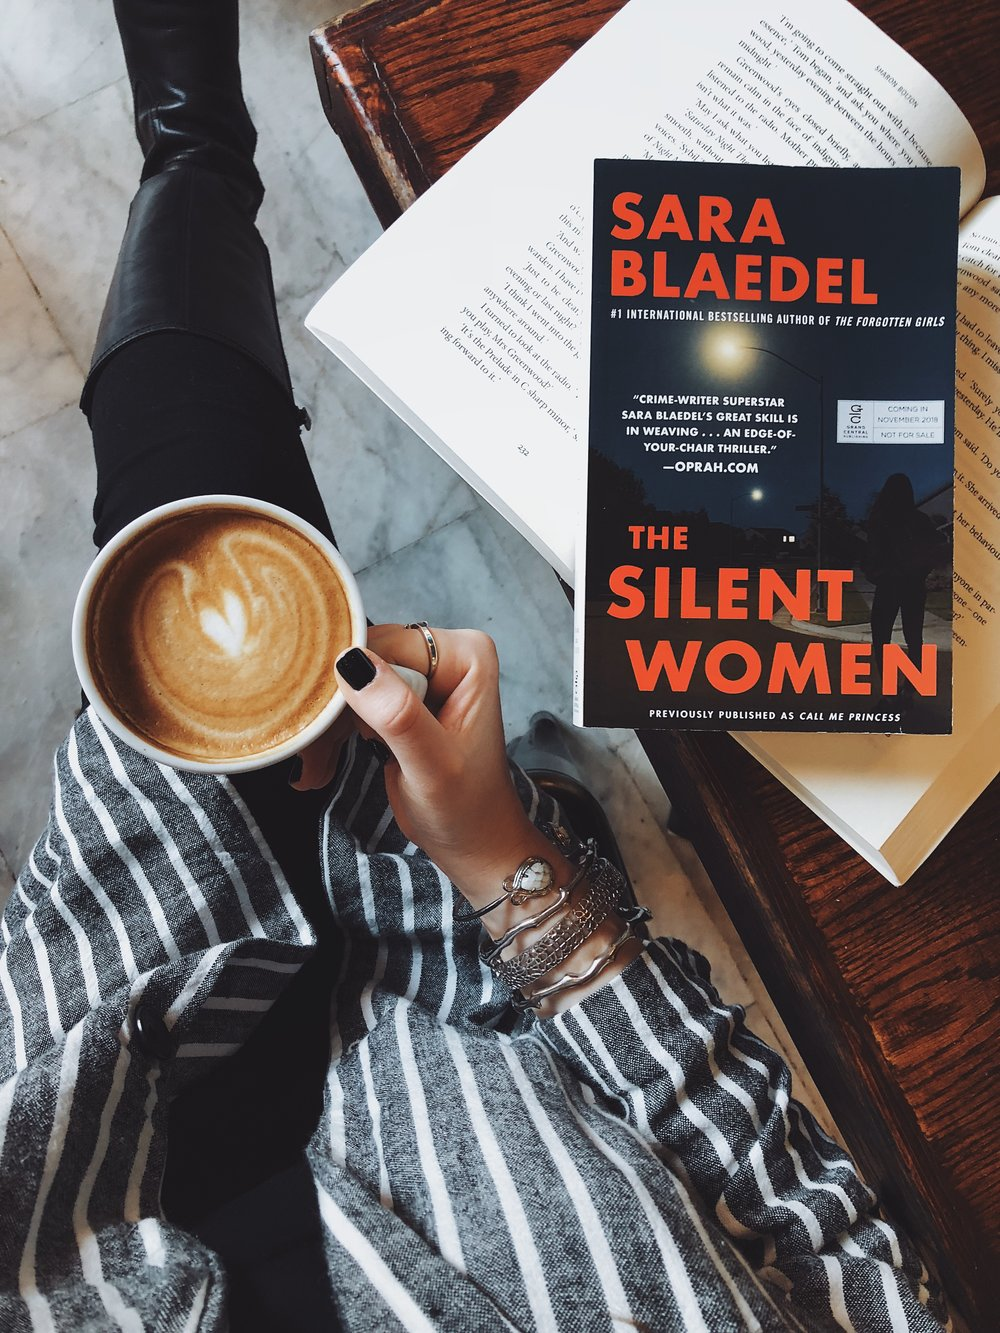 The Silent Women Blaedel.JPG